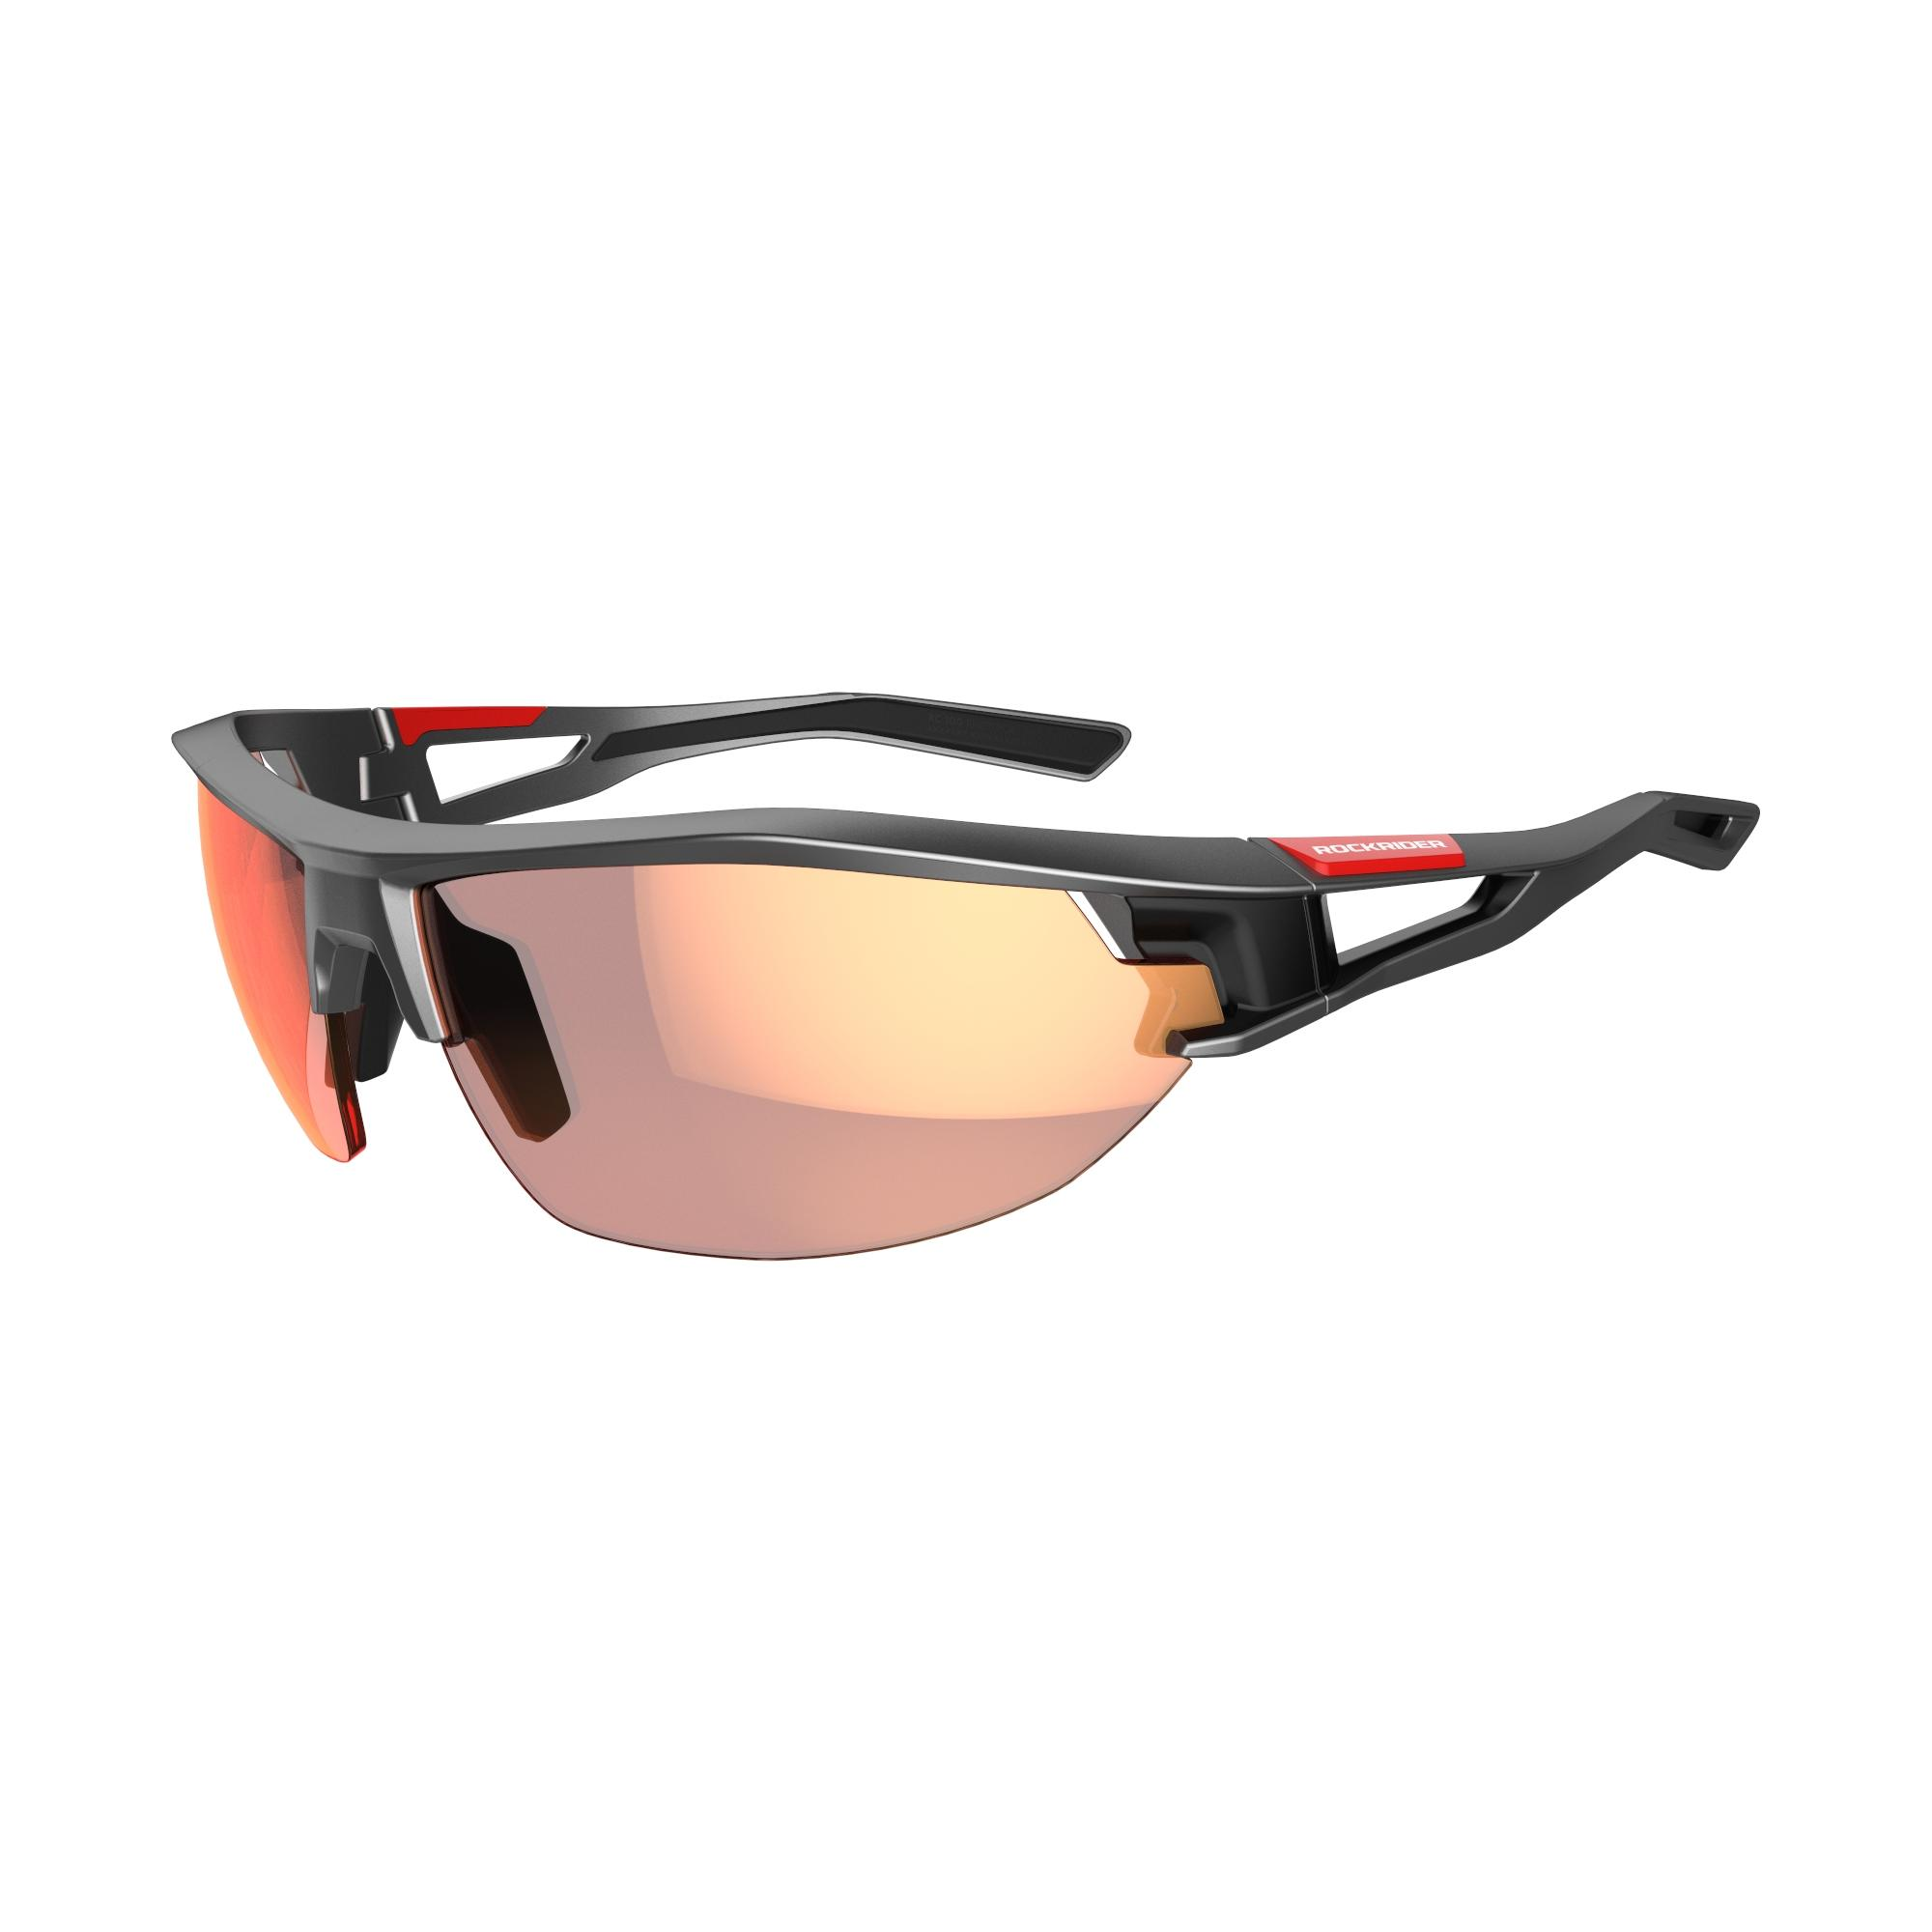 XC 120 Adult Cycling Photochromic Sunglasses Category 1 to 3 - Grey and Red